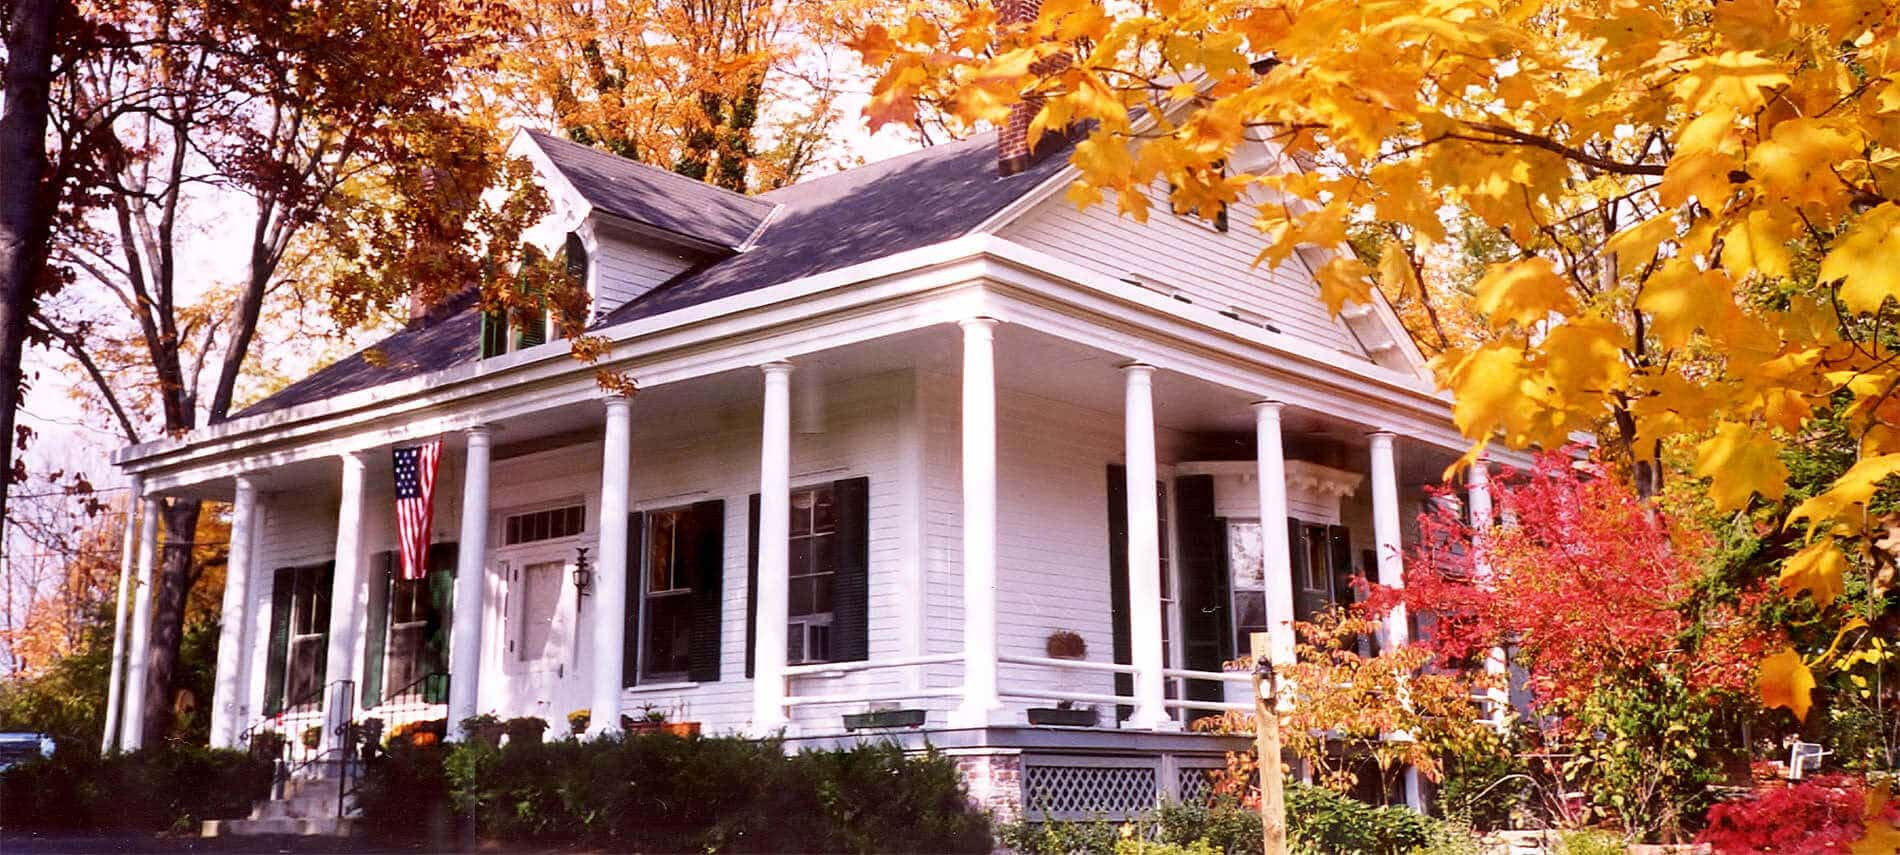 Exterior view of charming white house with numerous windows, sits among yellow and red trees of fall